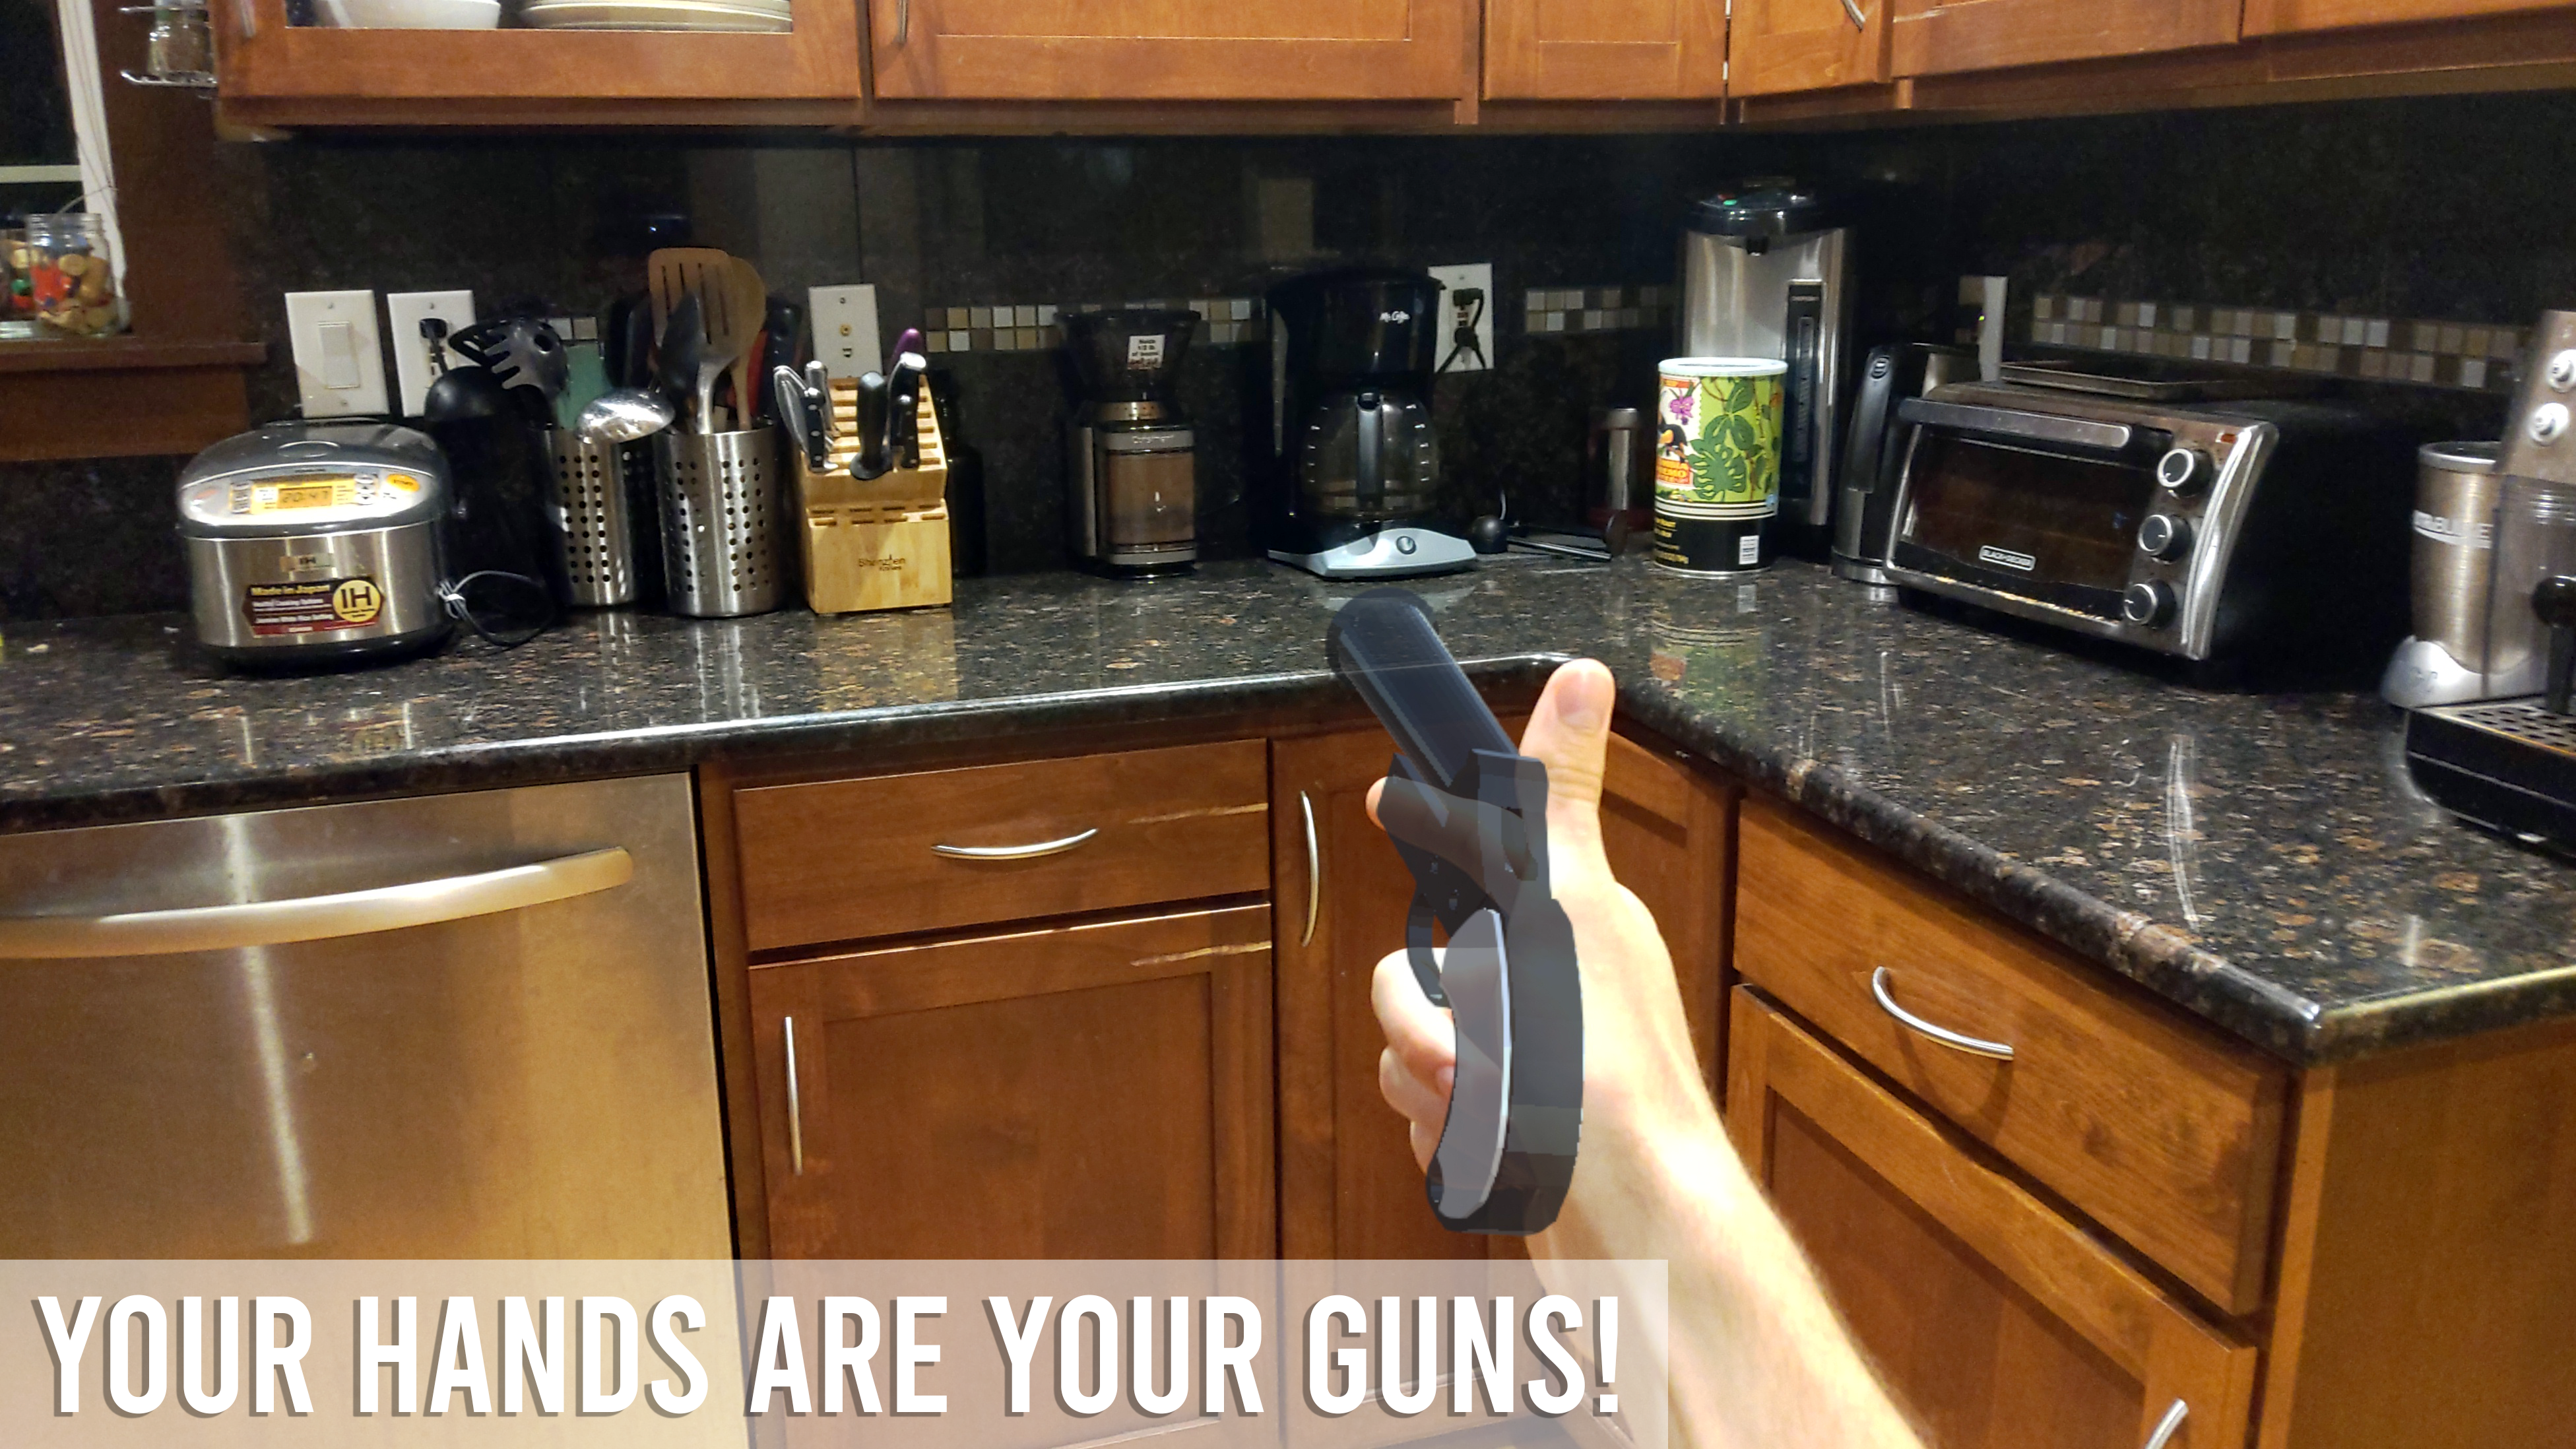 Your hands are your guns!